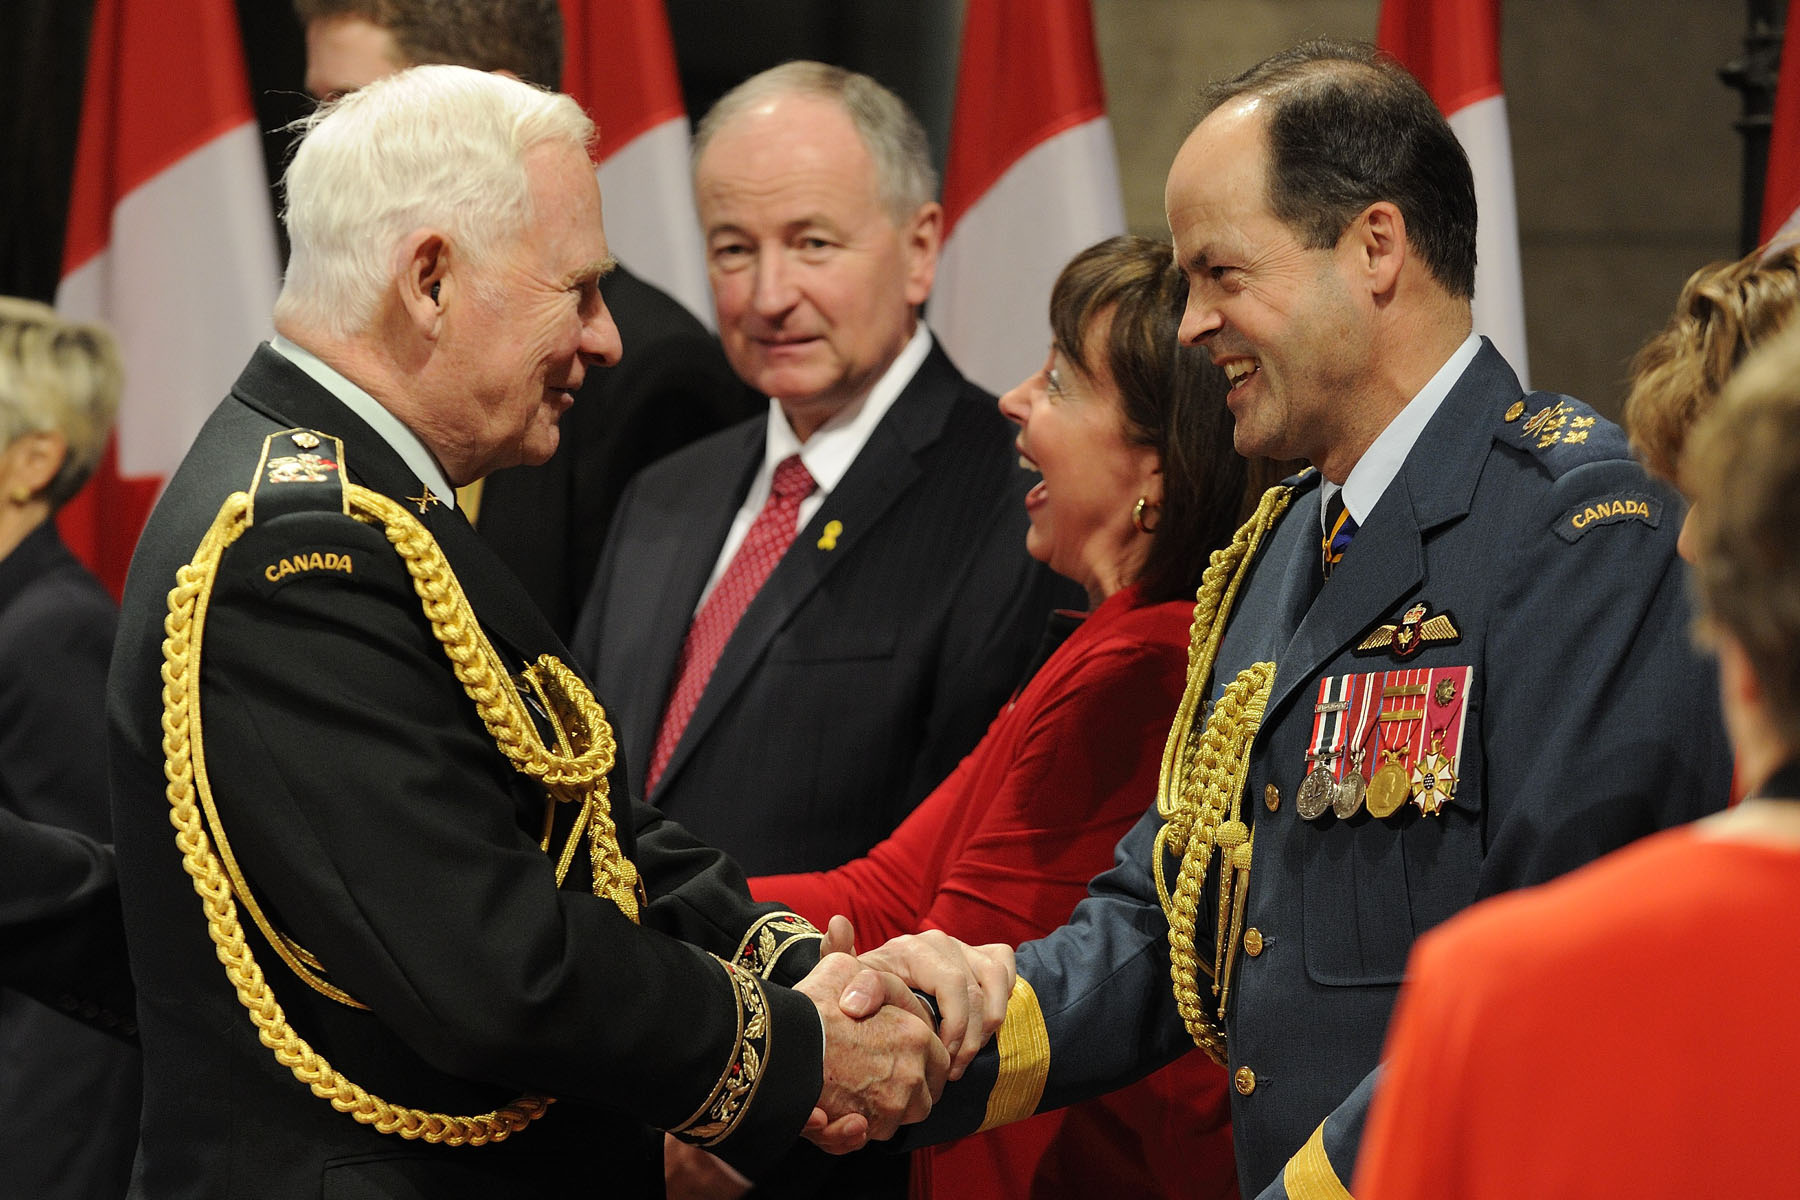 Rob Nicholson, Minister of National Defence (middle), and General Thomas J. Lawson, Chief of the Defence Staff (right) also attended the event.